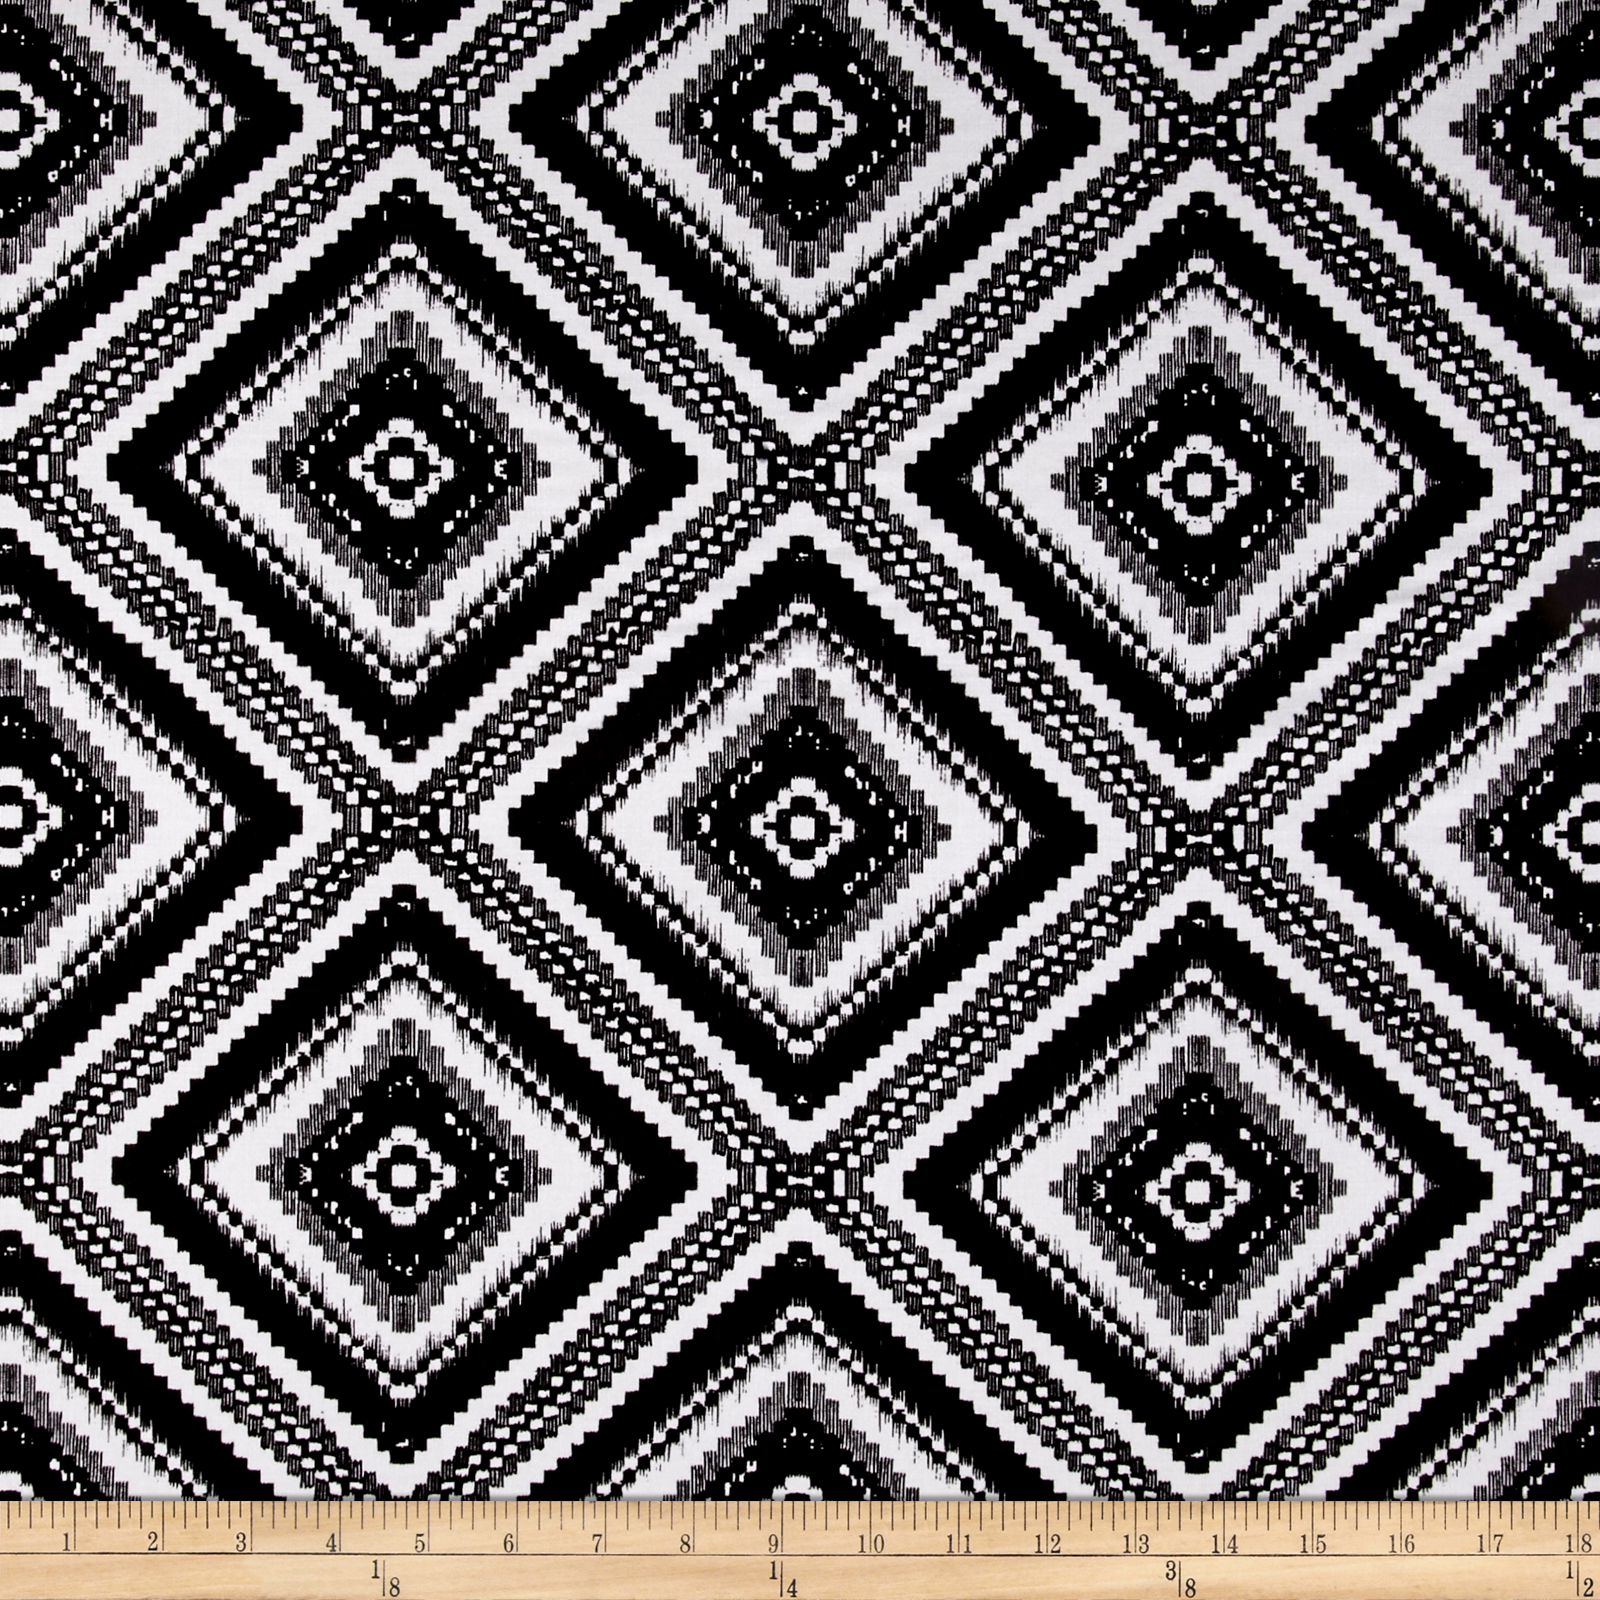 Rayon Challis Large White Diamond Deco Print On Black Fabric